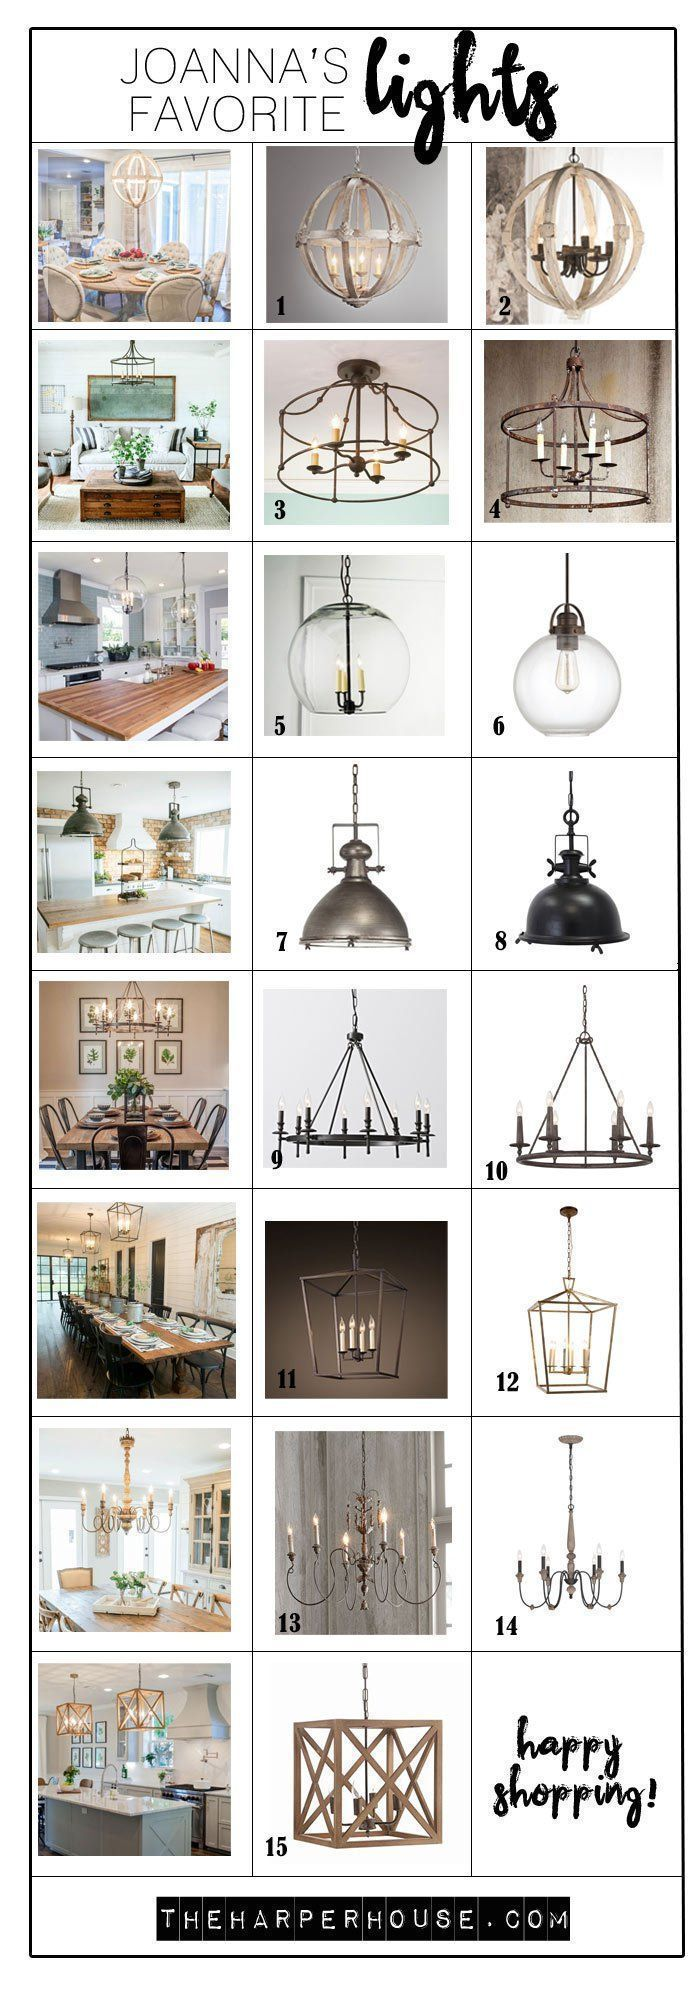 best home improvement ideas images on pinterest home ideas ad